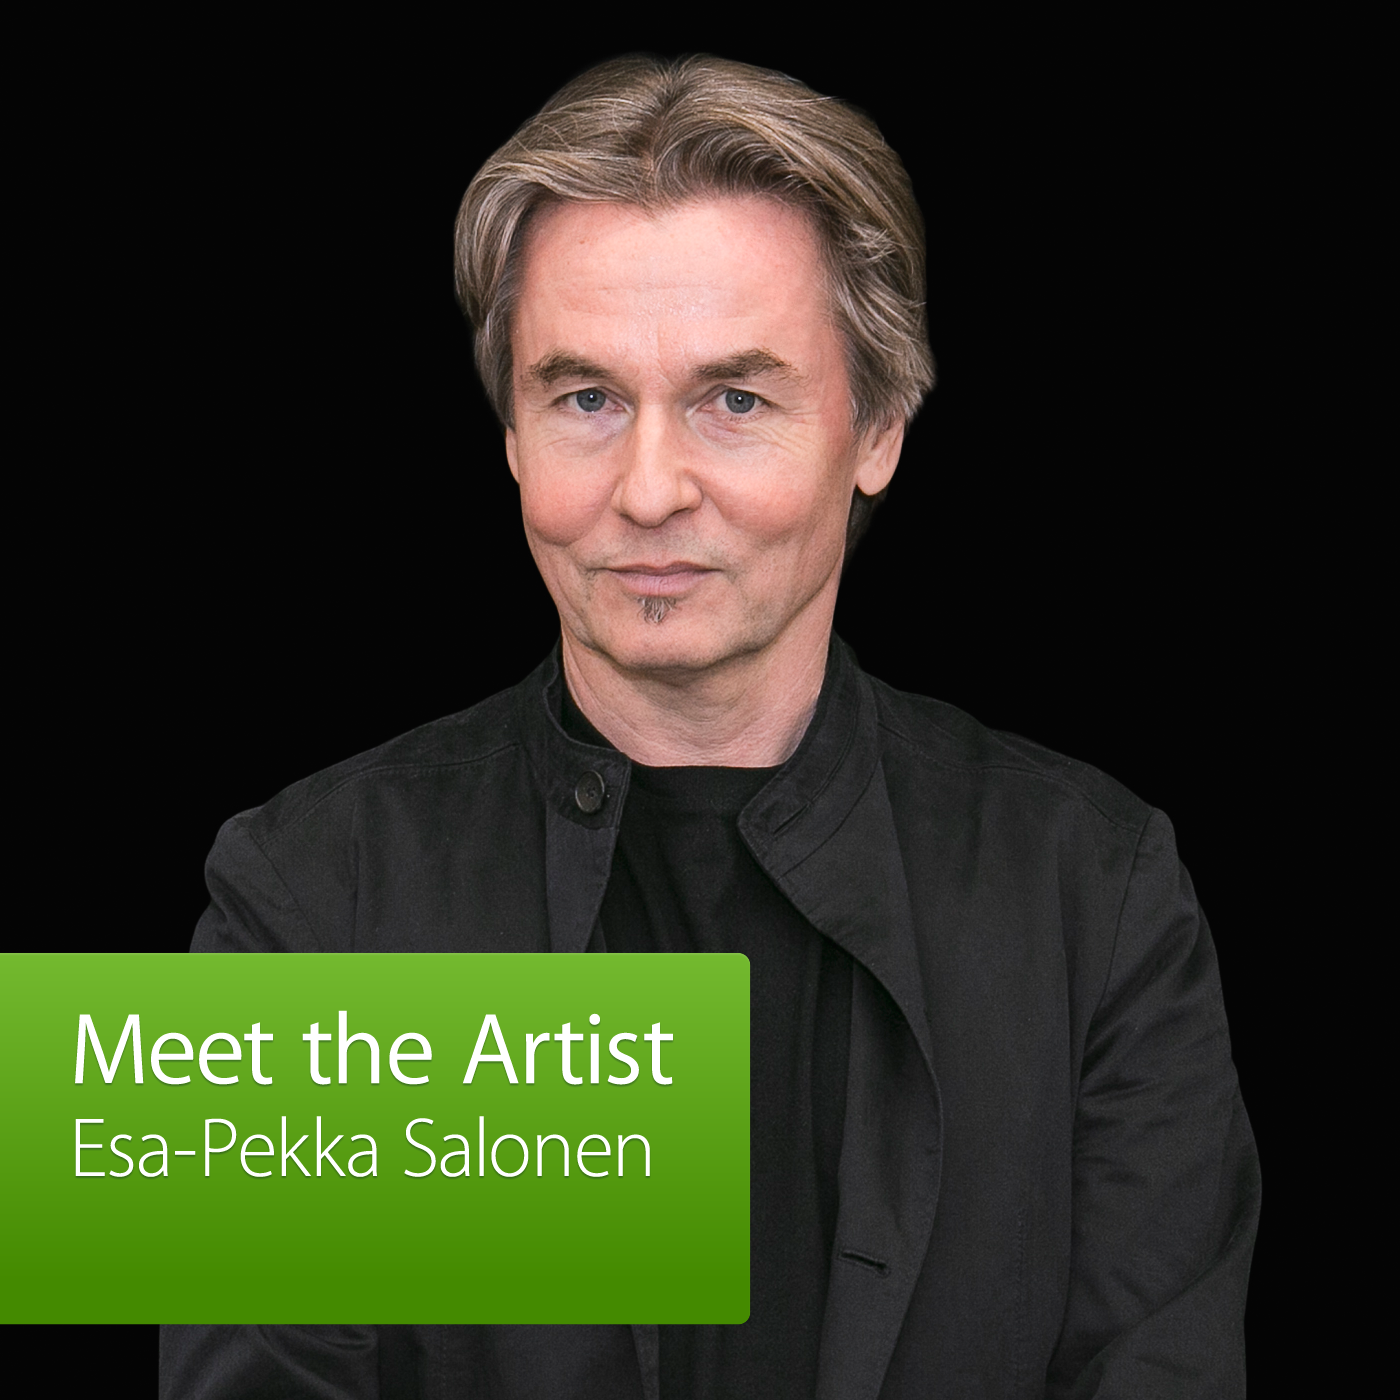 Esa-Pekka Salonen: Meet the Artist